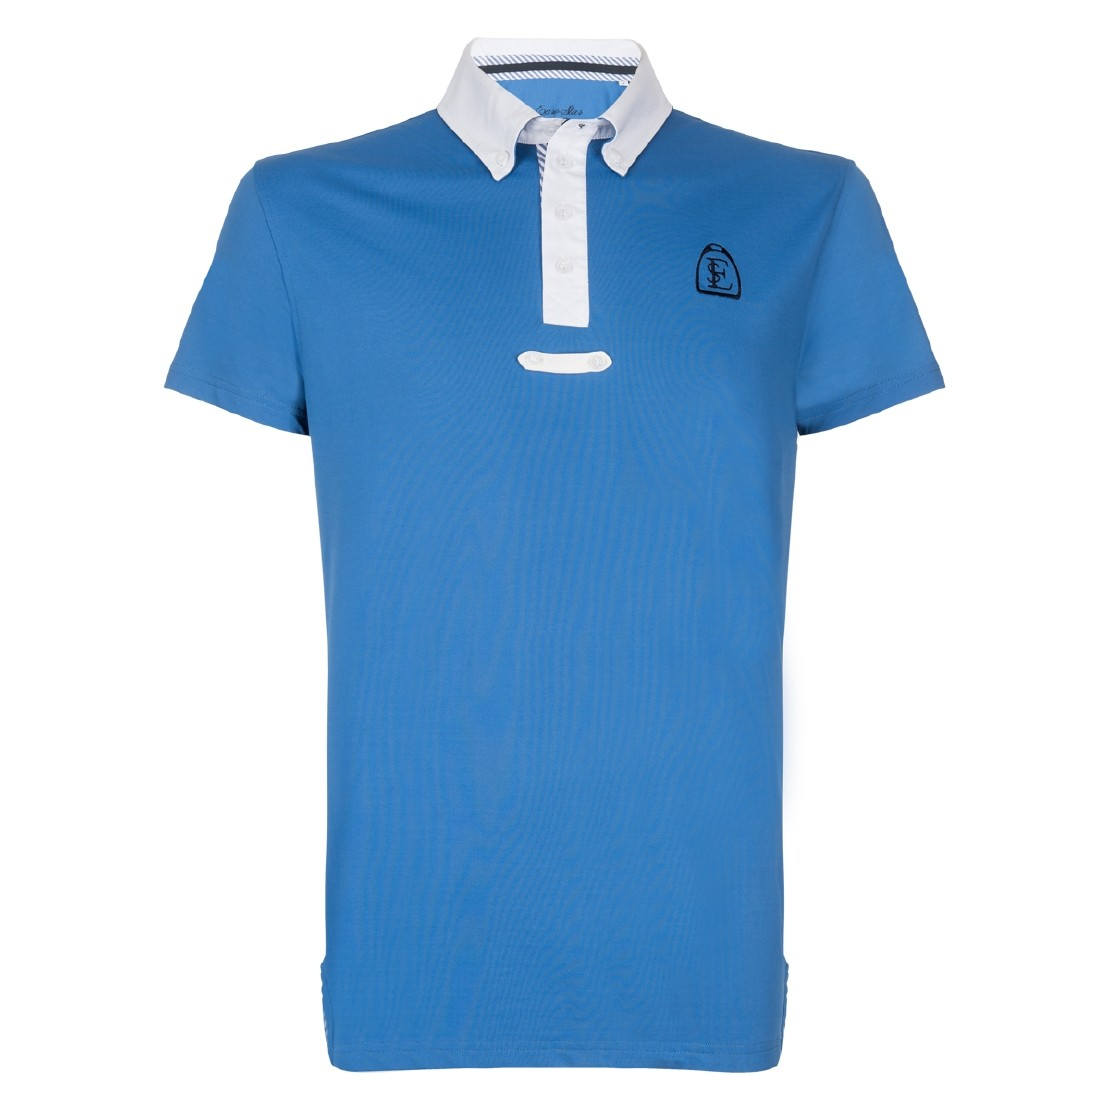 Turniershirt Philippe XL Dutch Blue